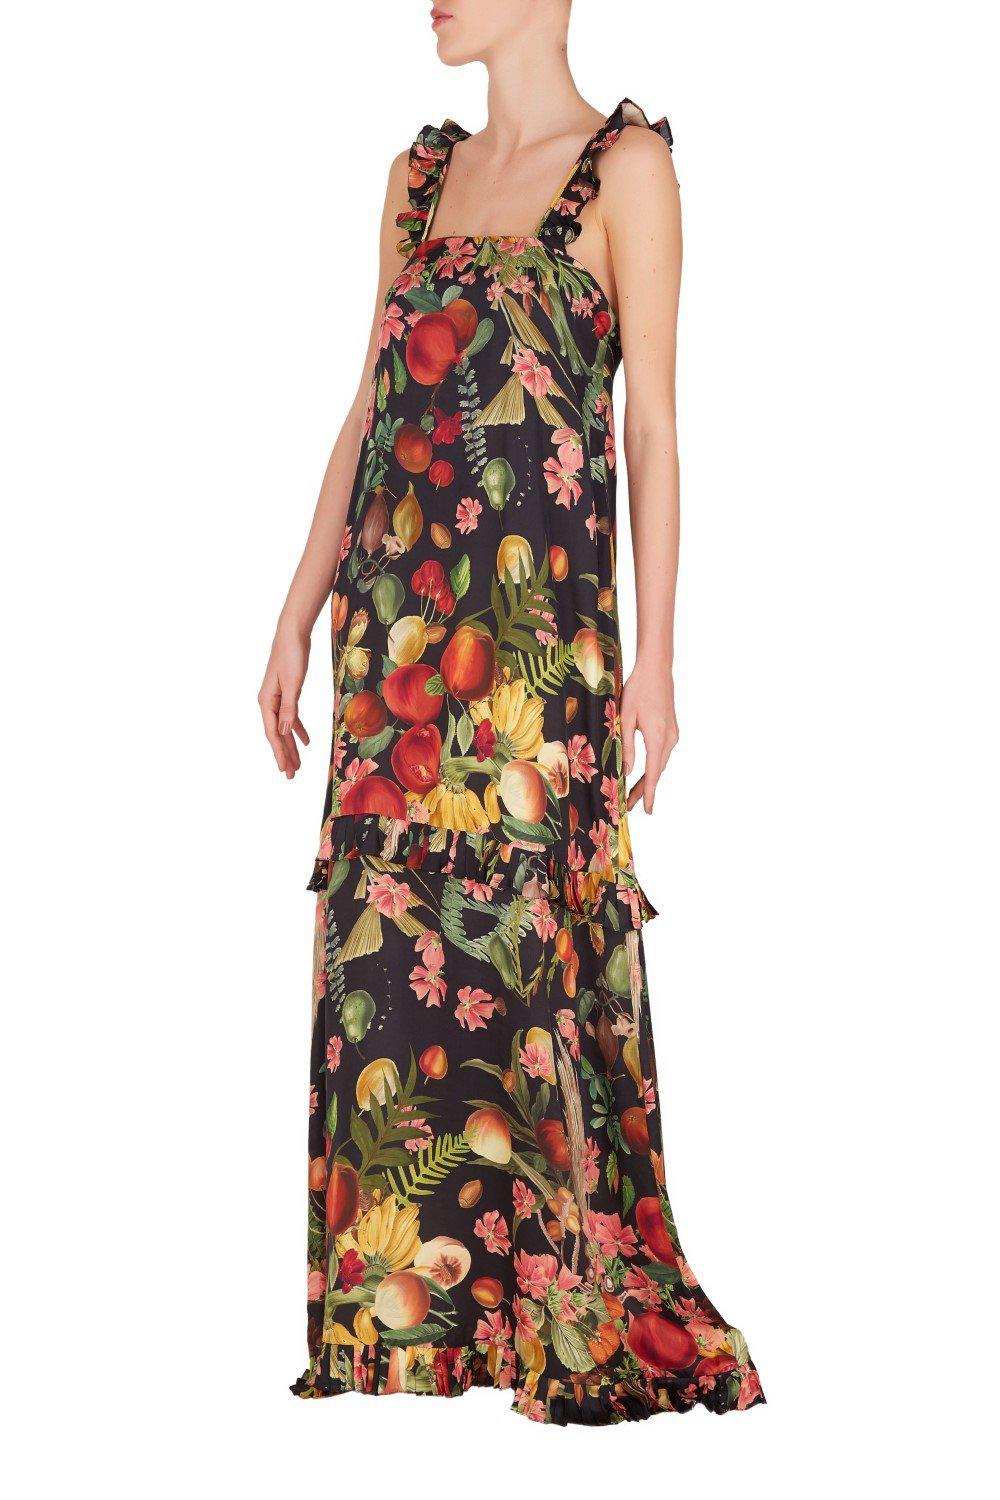 Fruits Exotiques Maxi Long Dress with Frills